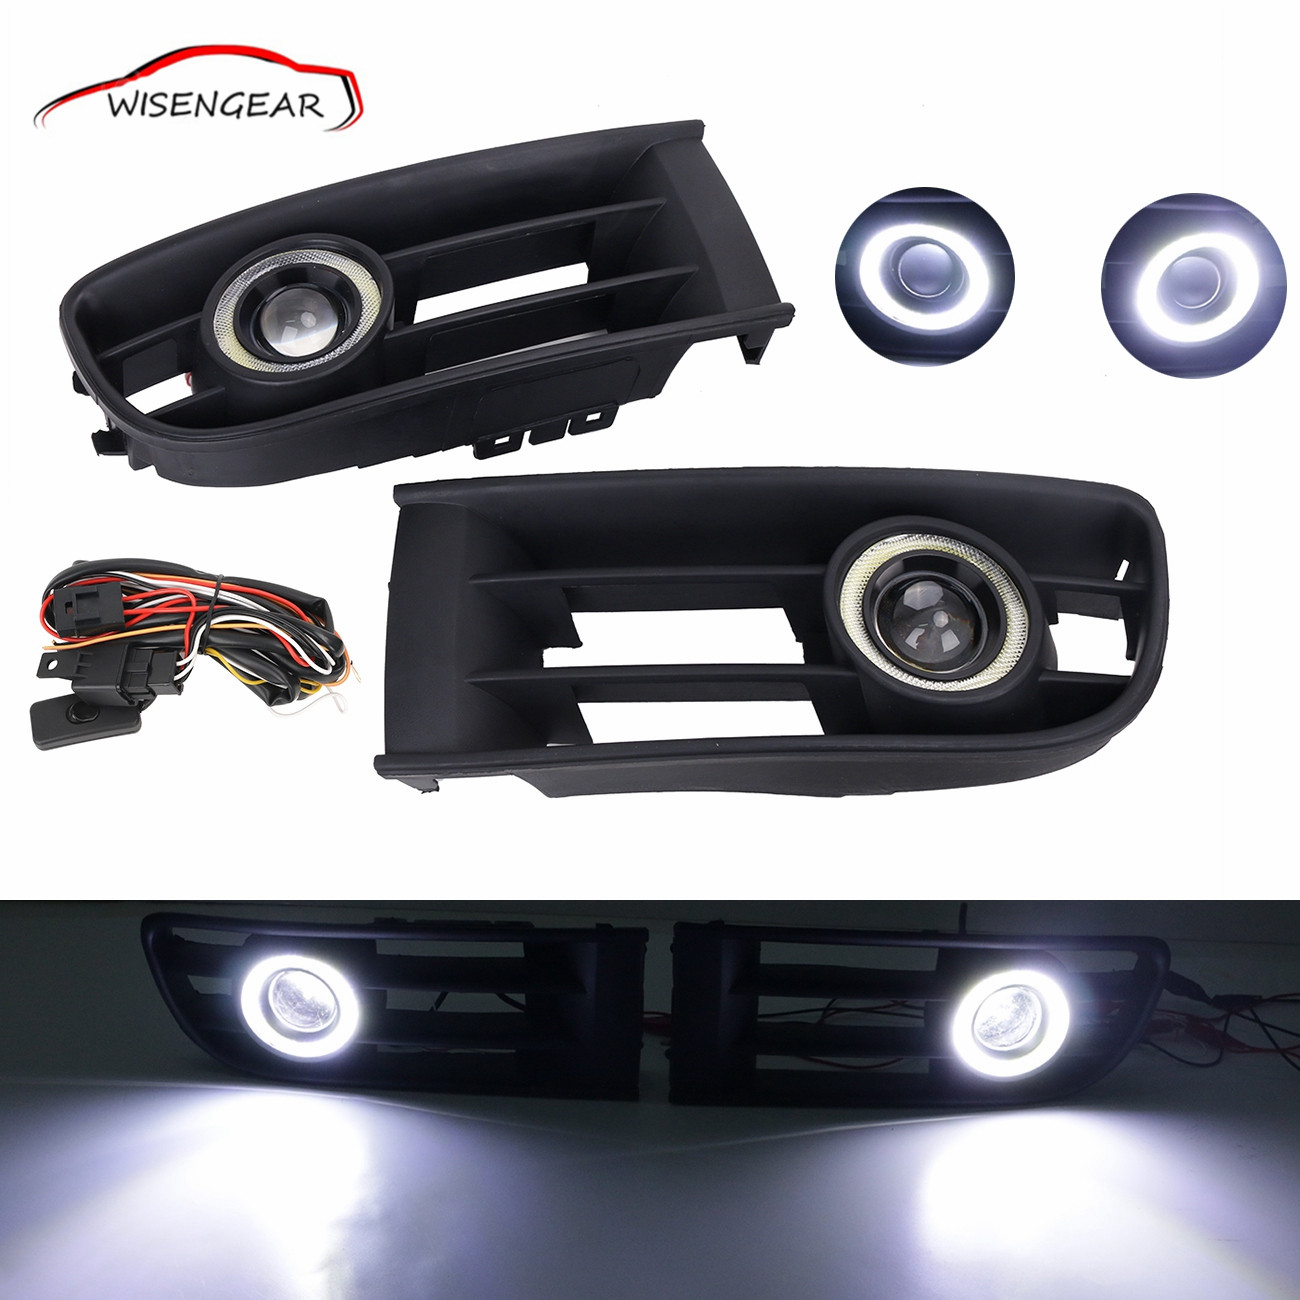 Front Bumper Fog LampGrille +LED Convex lens Fog Light +  Angel Eyes For VW 2001  2002 2003 2004 2005 Polo 9N1 C/5 front bumper fog lamp grille led convex lens fog light angel eyes for vw polo 2001 2002 2003 2004 2005 drl car accessory p364